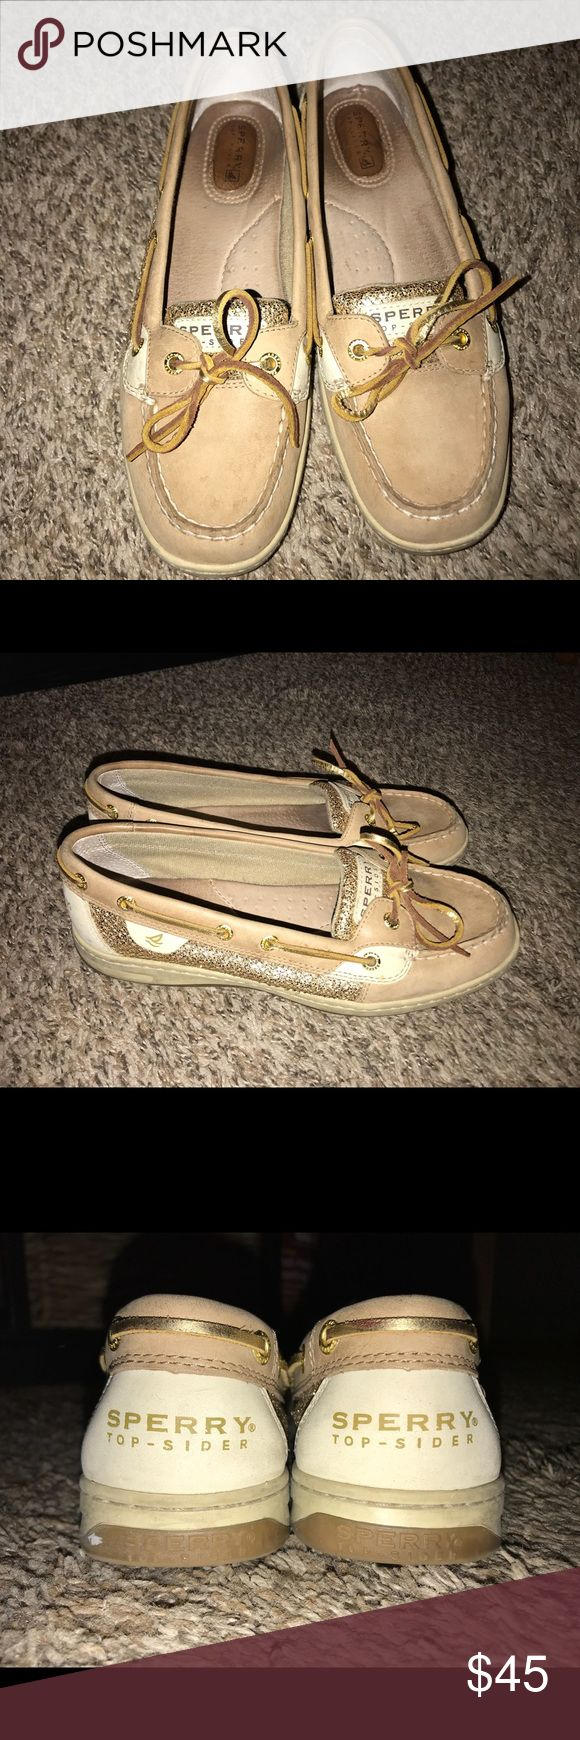 Sperry Boat Shoe Sperry Angelfish Linen/Gold Glit. Normal wear and it good condition, just need some cleaning. Sperry Top-Sider Shoes Flats & Loafers